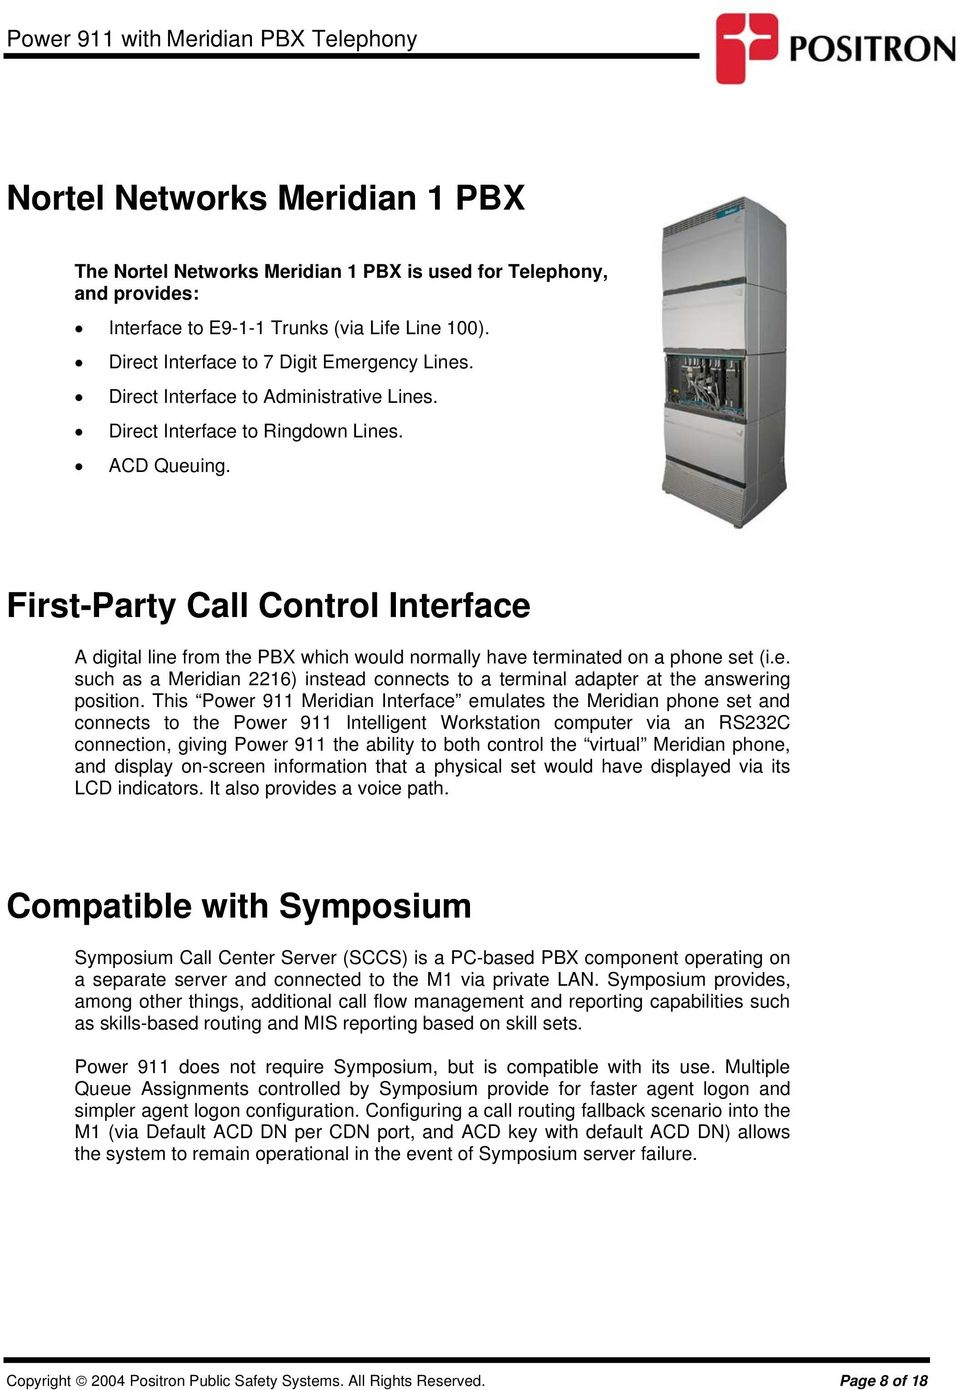 Power 911 Intelligent Workstation Nortel Networks Meridian 1 Pbx Ata 110 Wiring Diagram B Walkthrough First Party Call Control Interface A Digital Line From The Which Would Normally Have